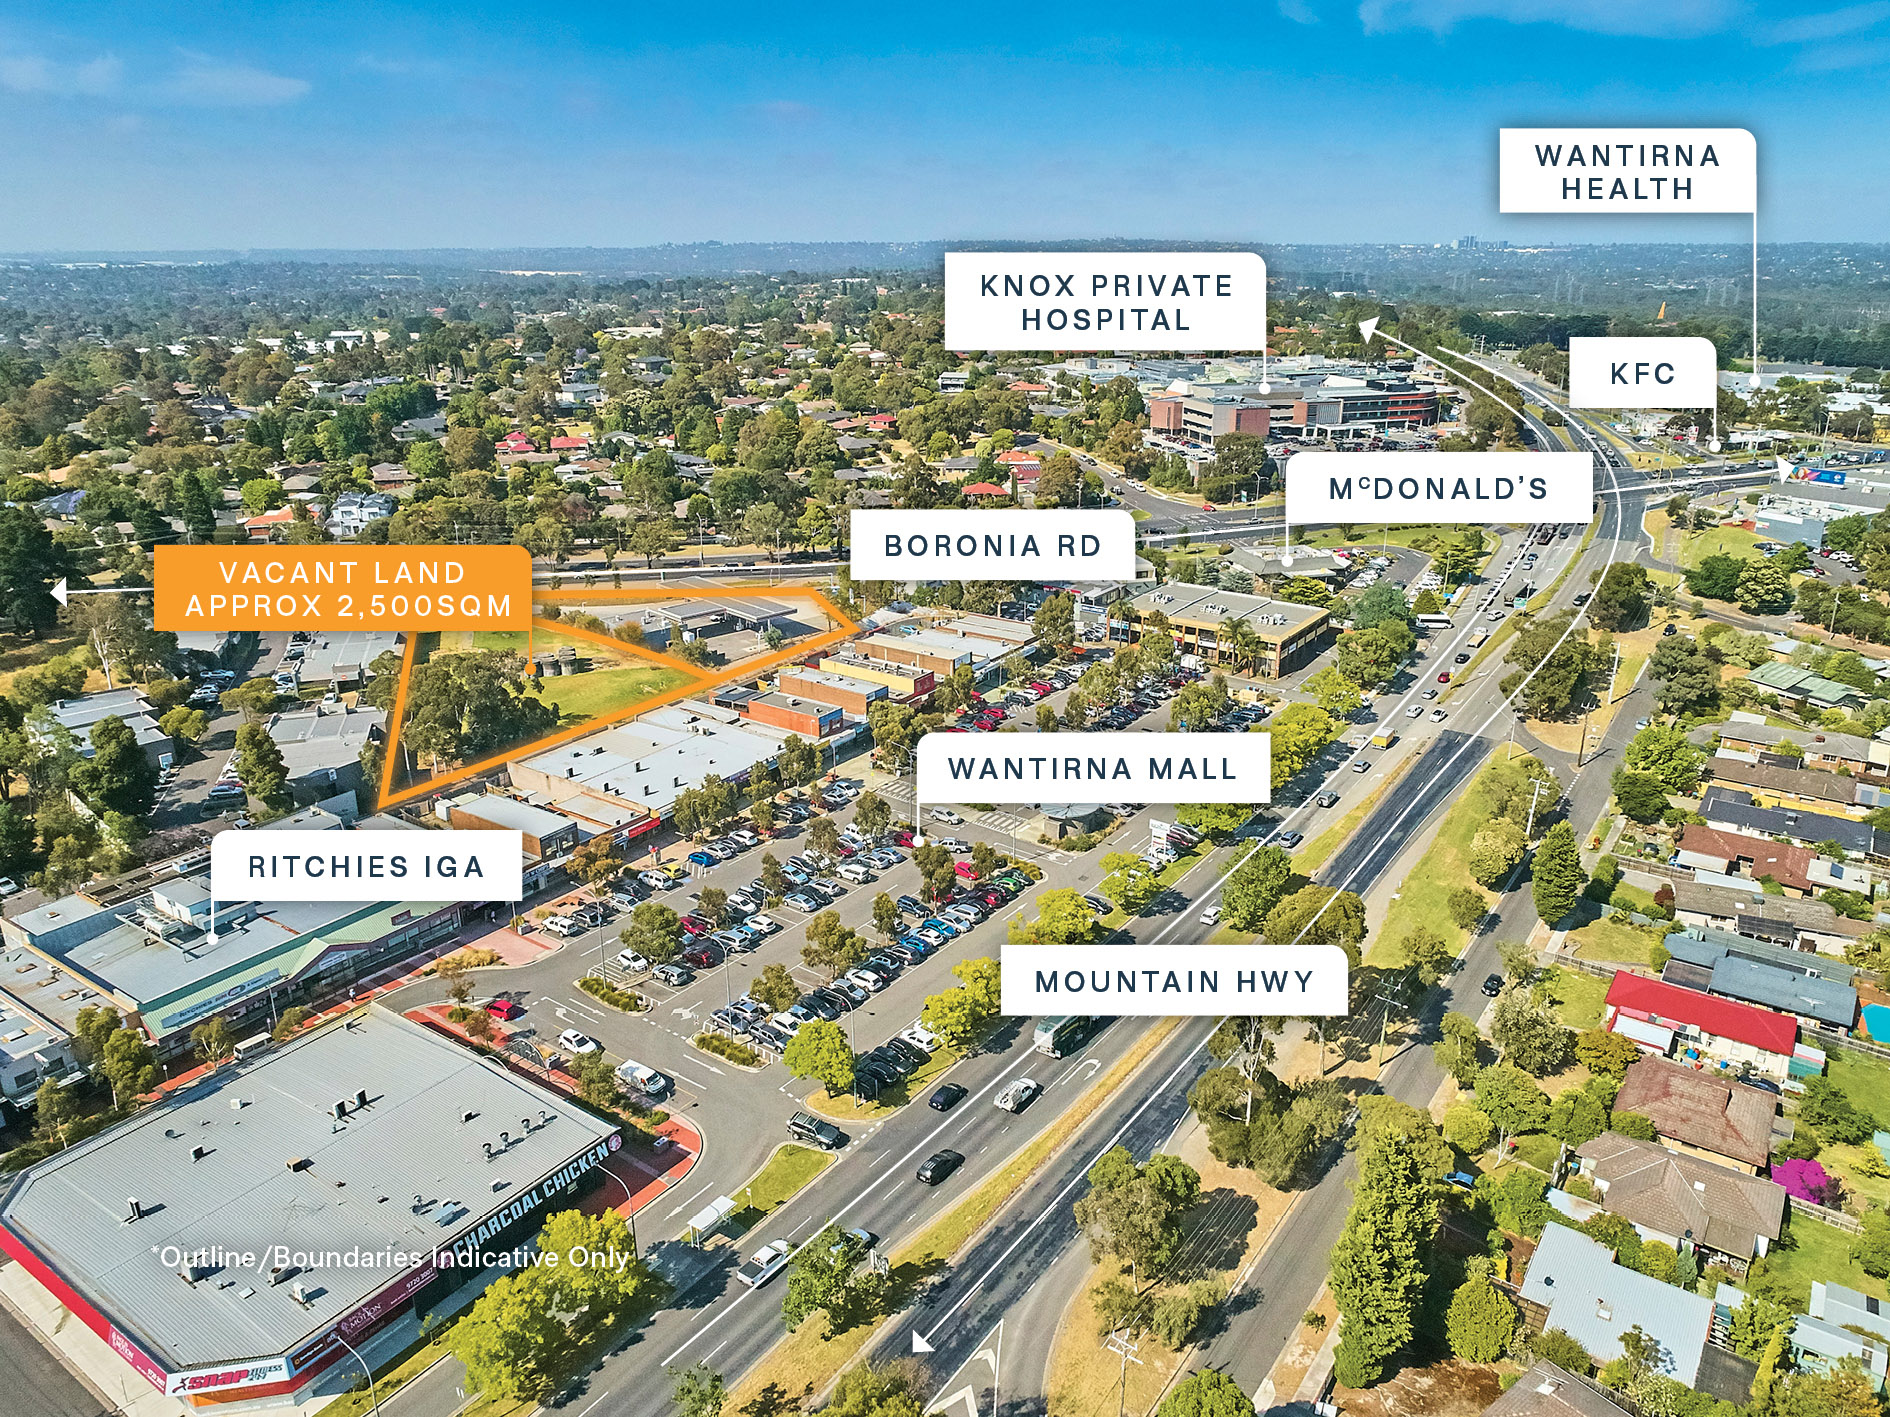 Land Rich 7-Eleven Freehold Investment